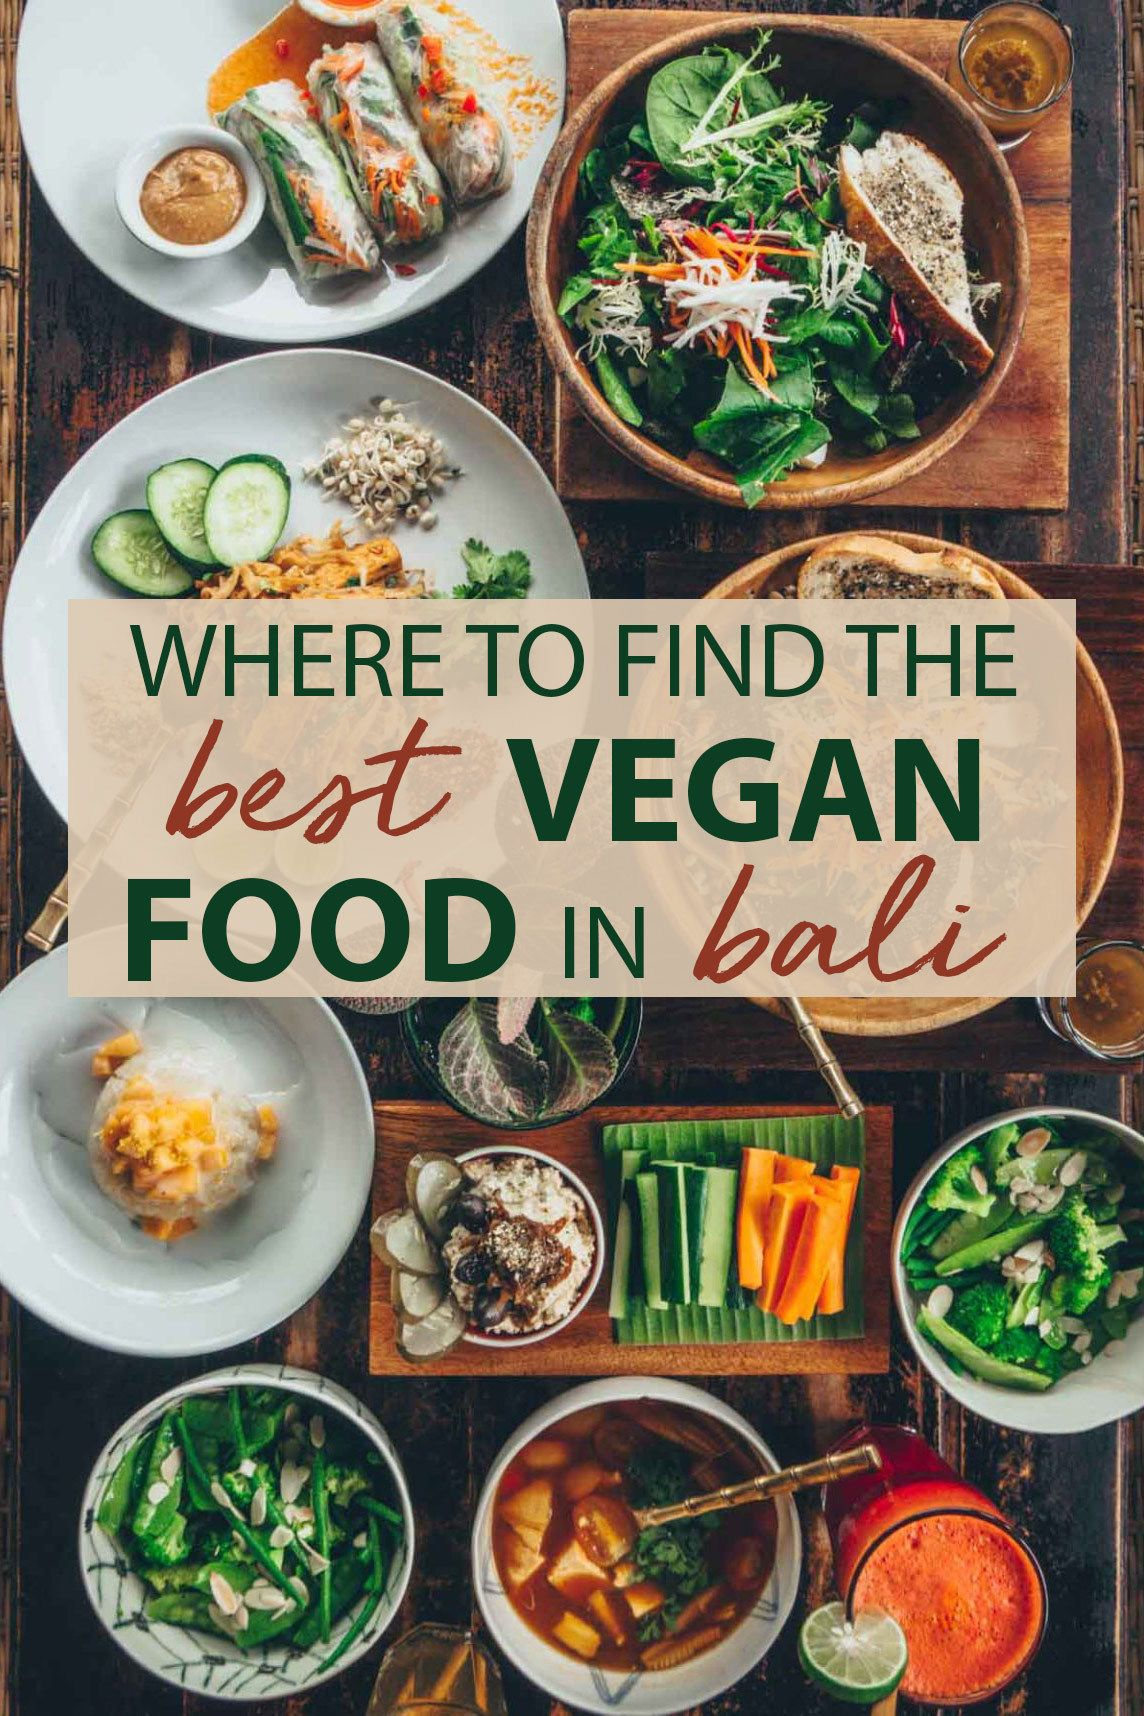 Where to Find the Best Vegan Food in Bali